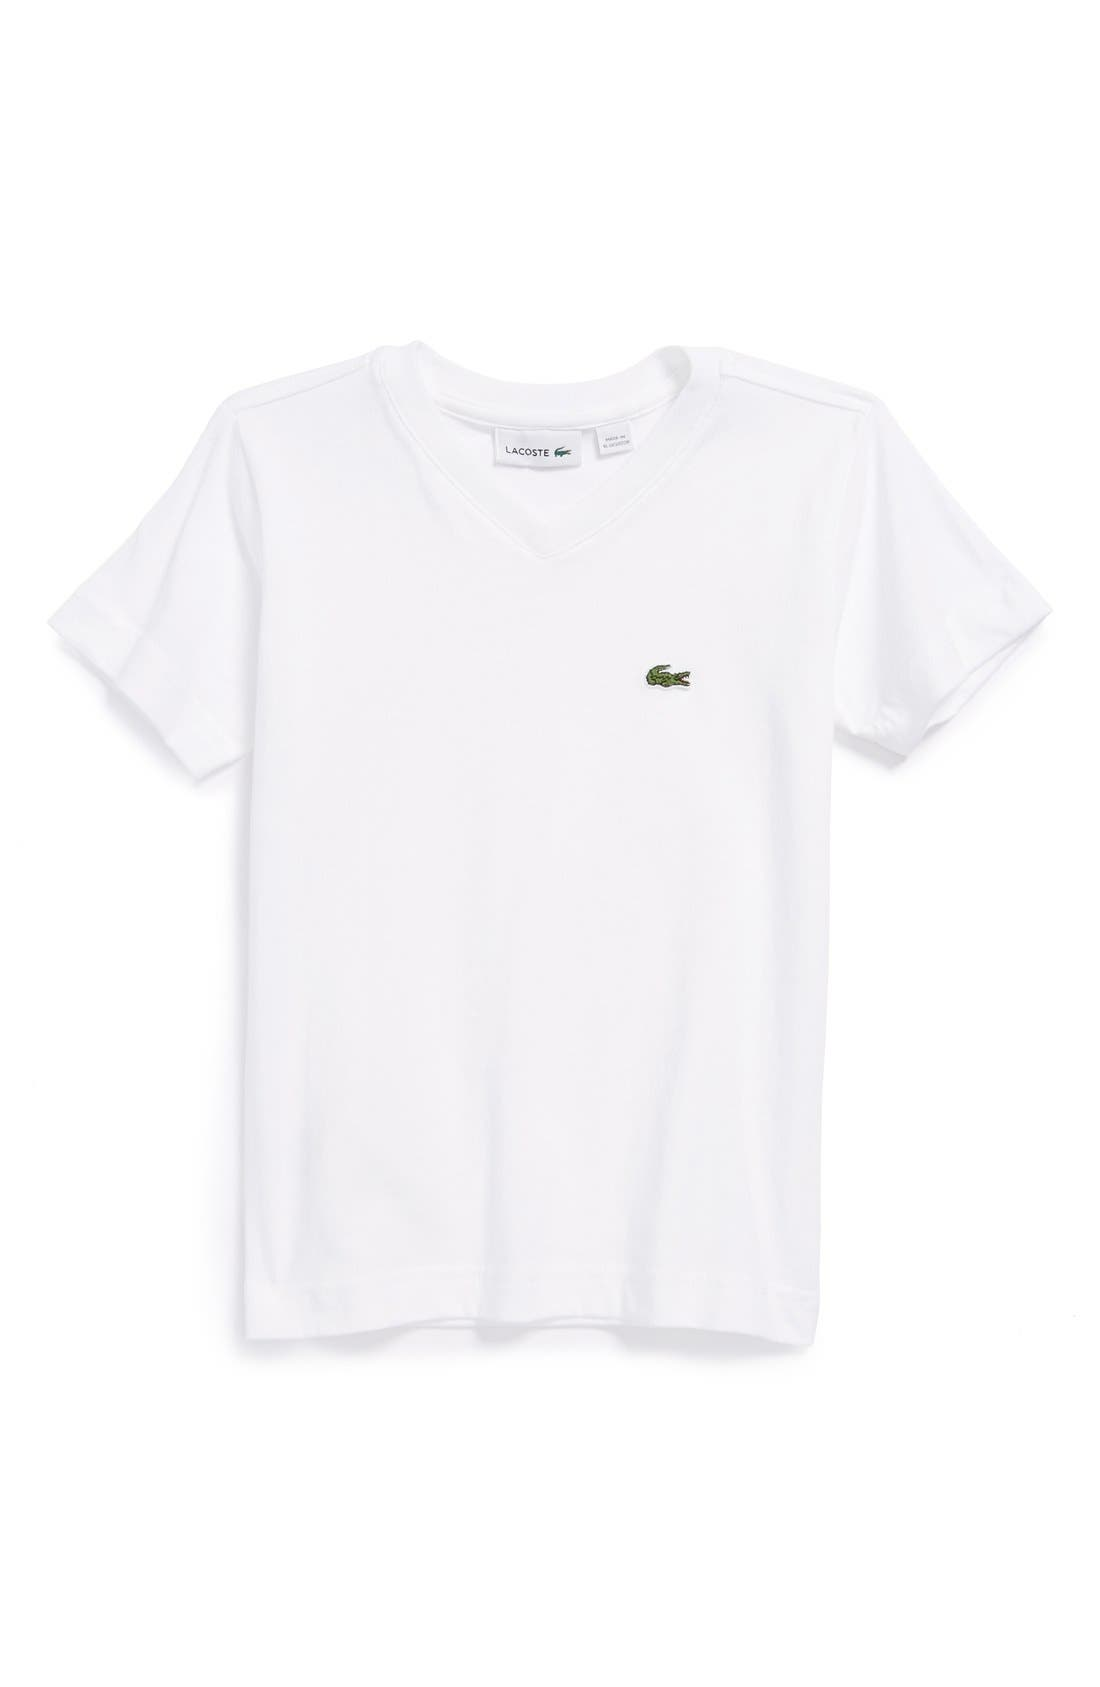 Main Image - Lacoste Classic Jersey V-Neck T-Shirt (Toddler Boys)